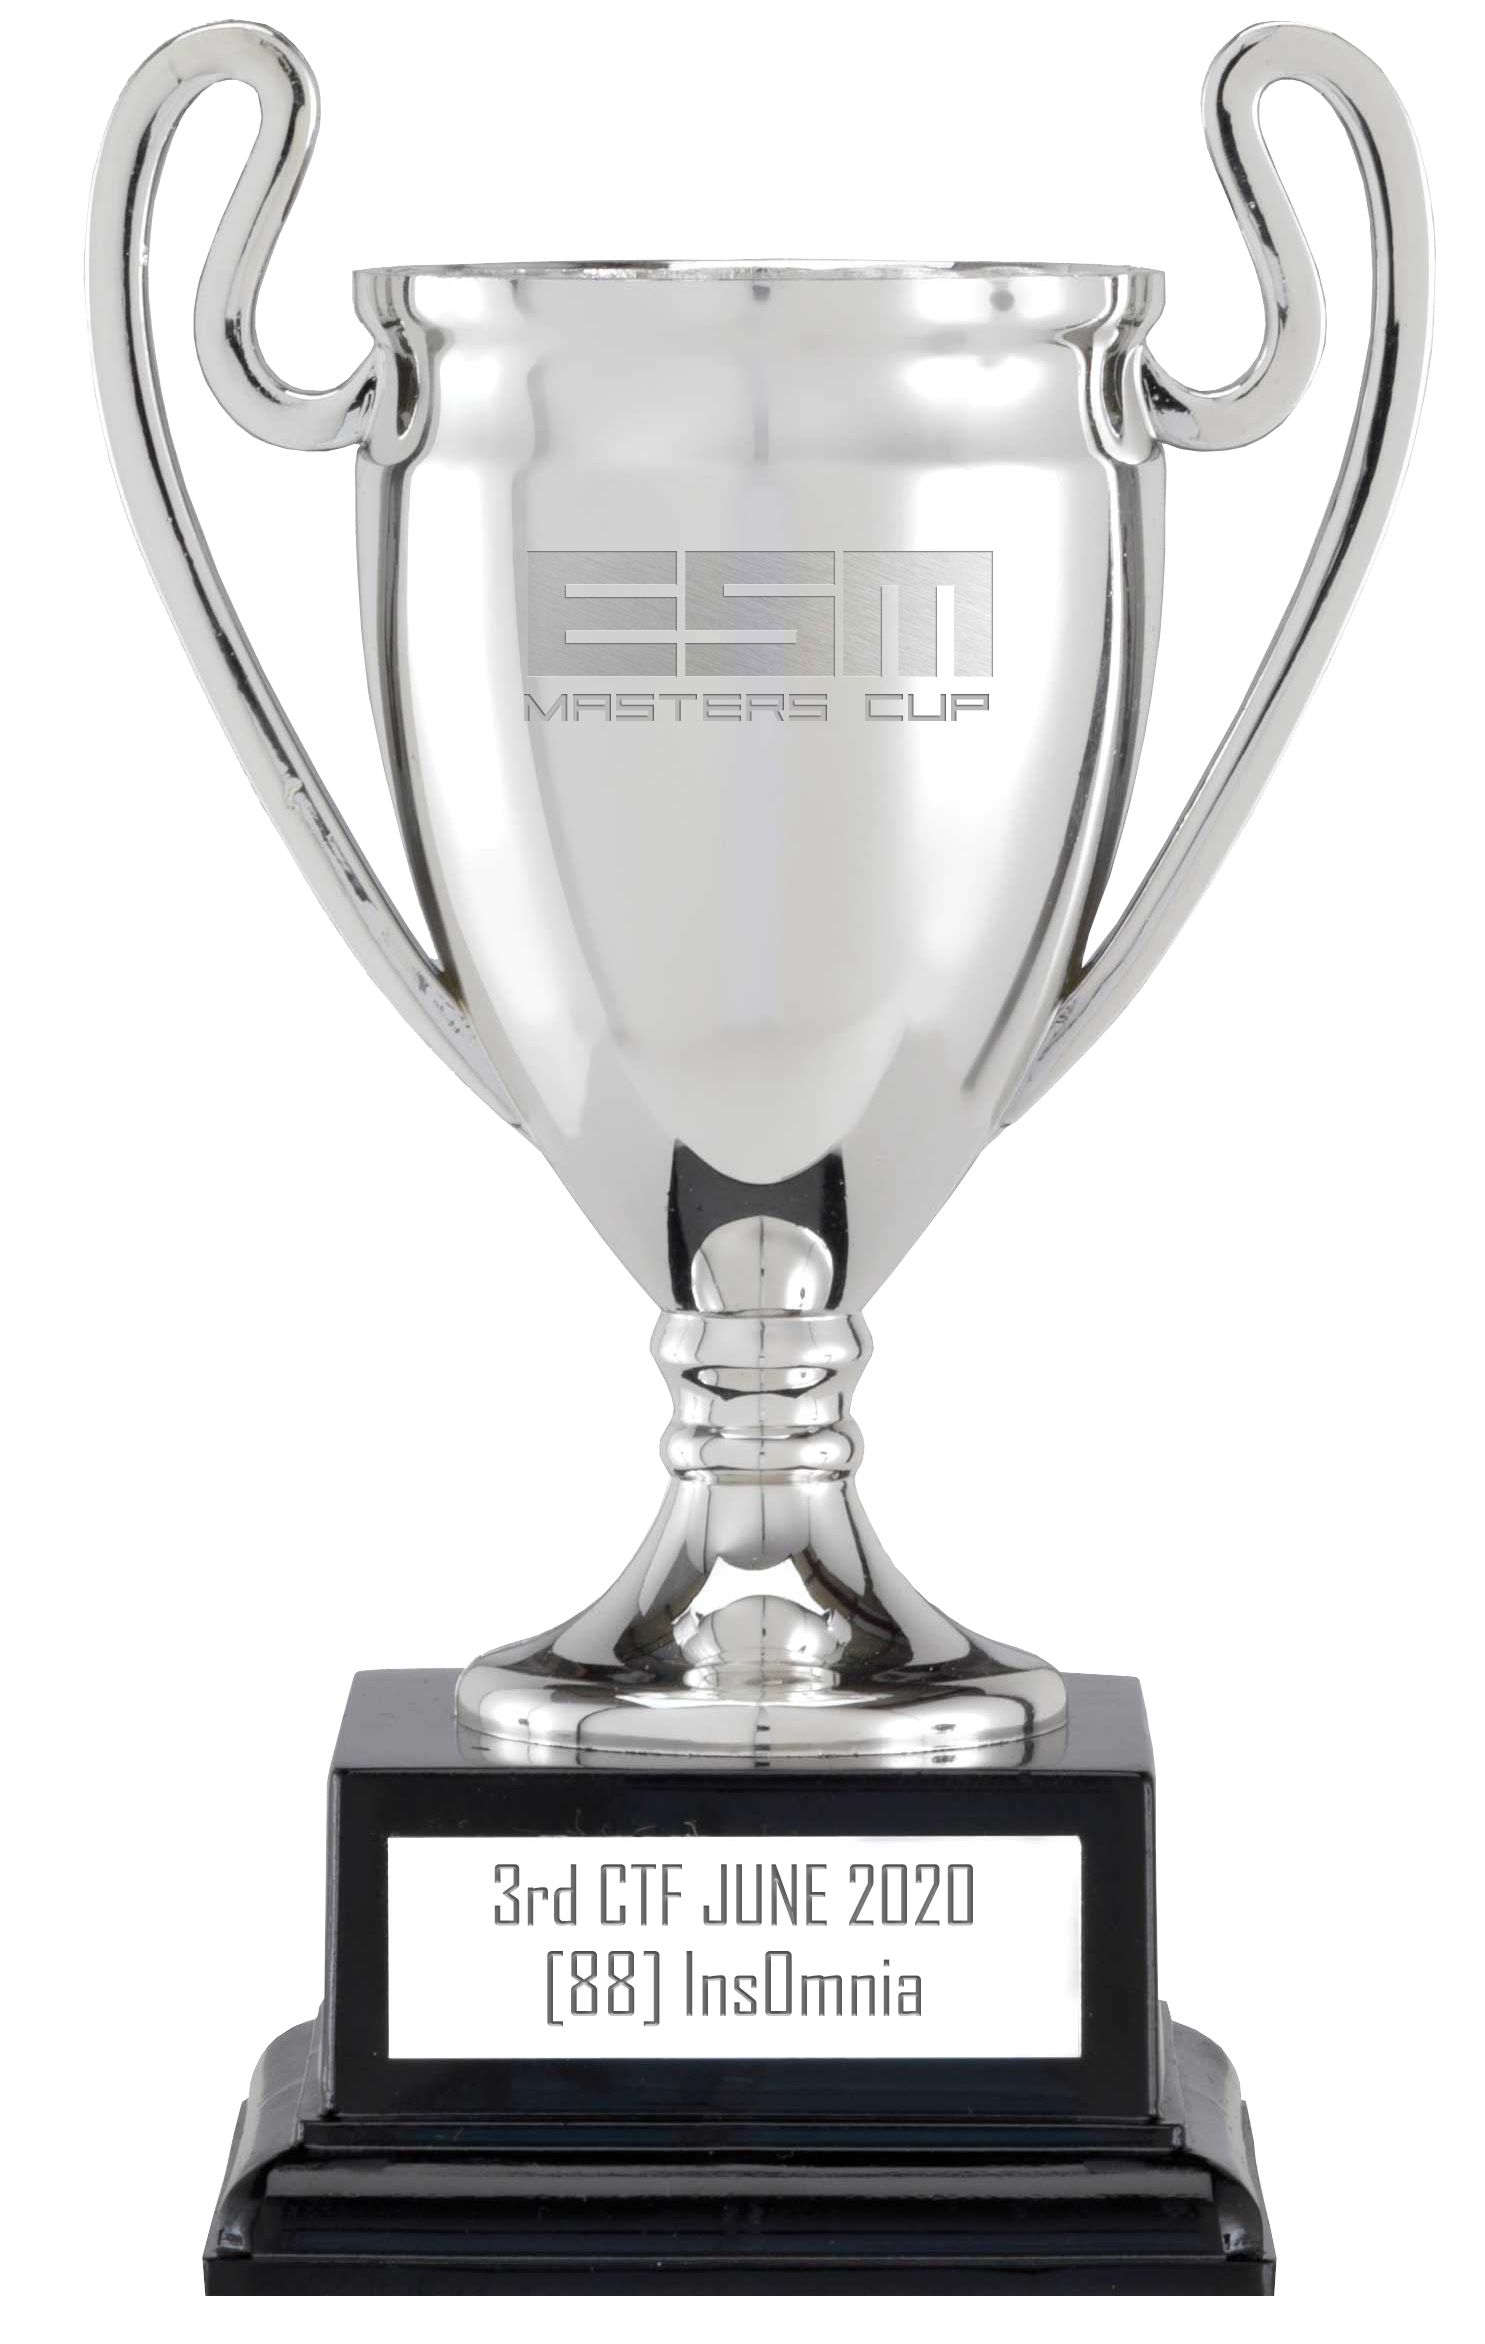 3 EUROPE CTF Masters CUP June 2020 copy